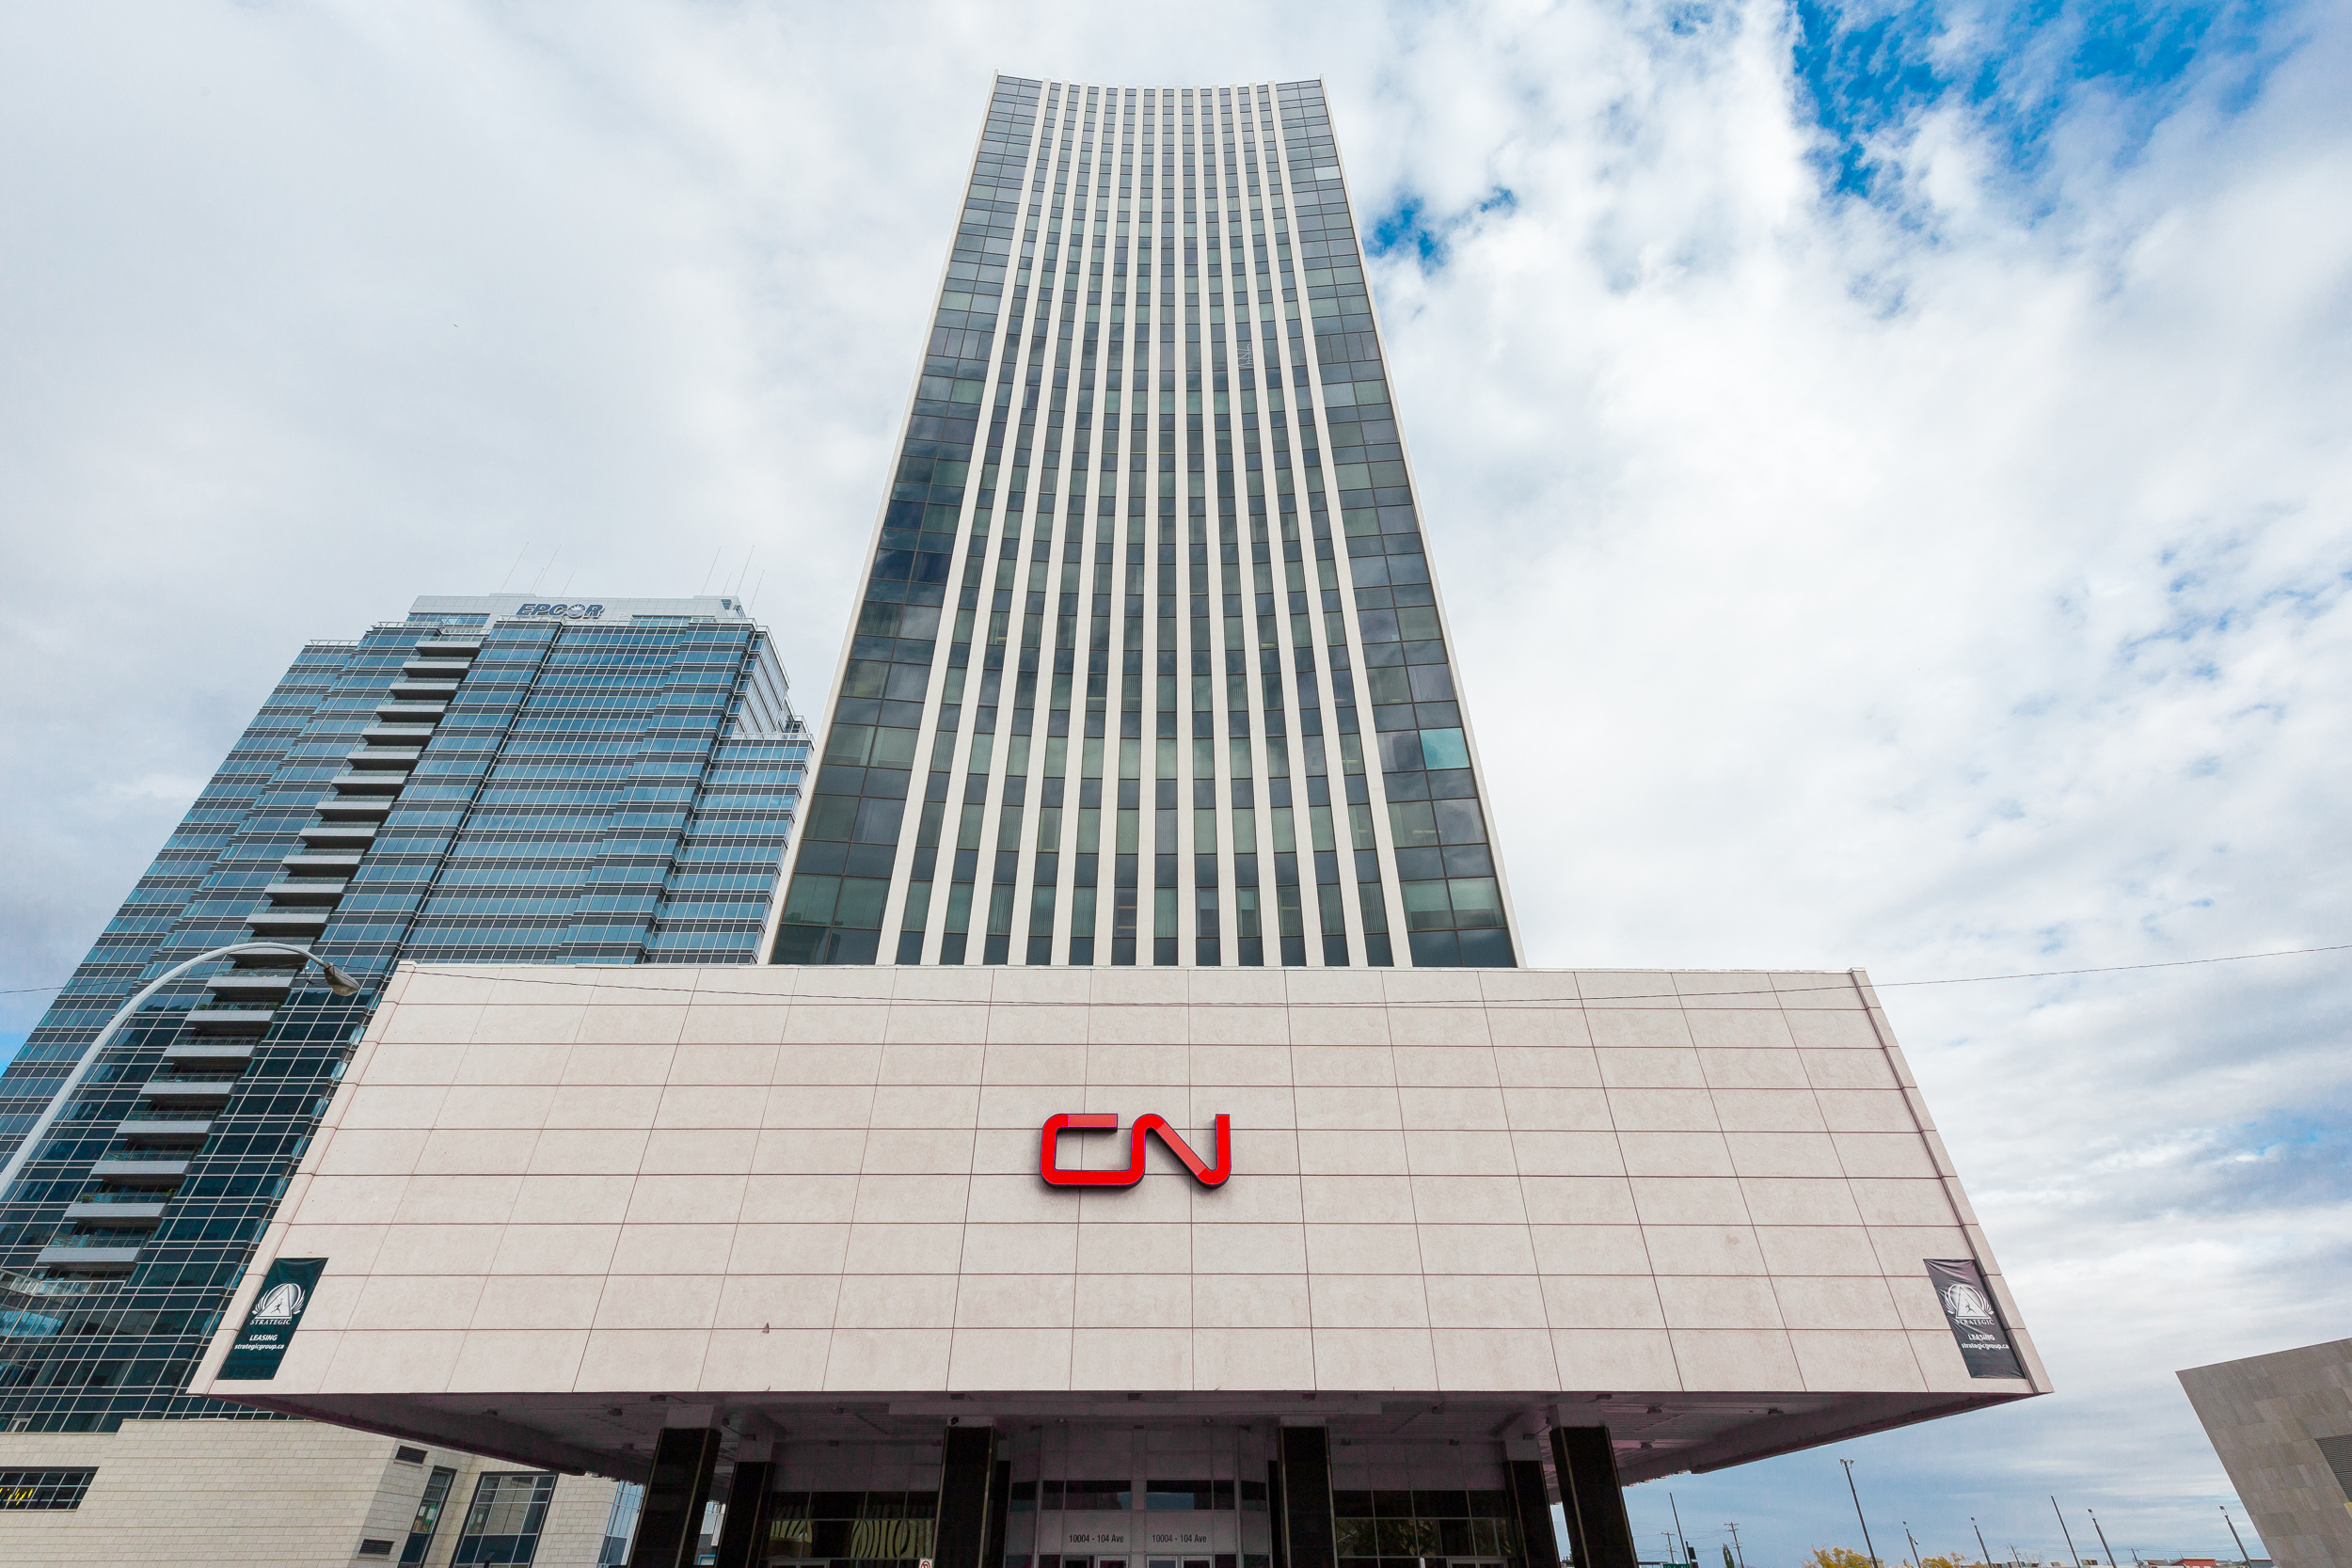 800 CN Tower 10004 104 Avenue NW